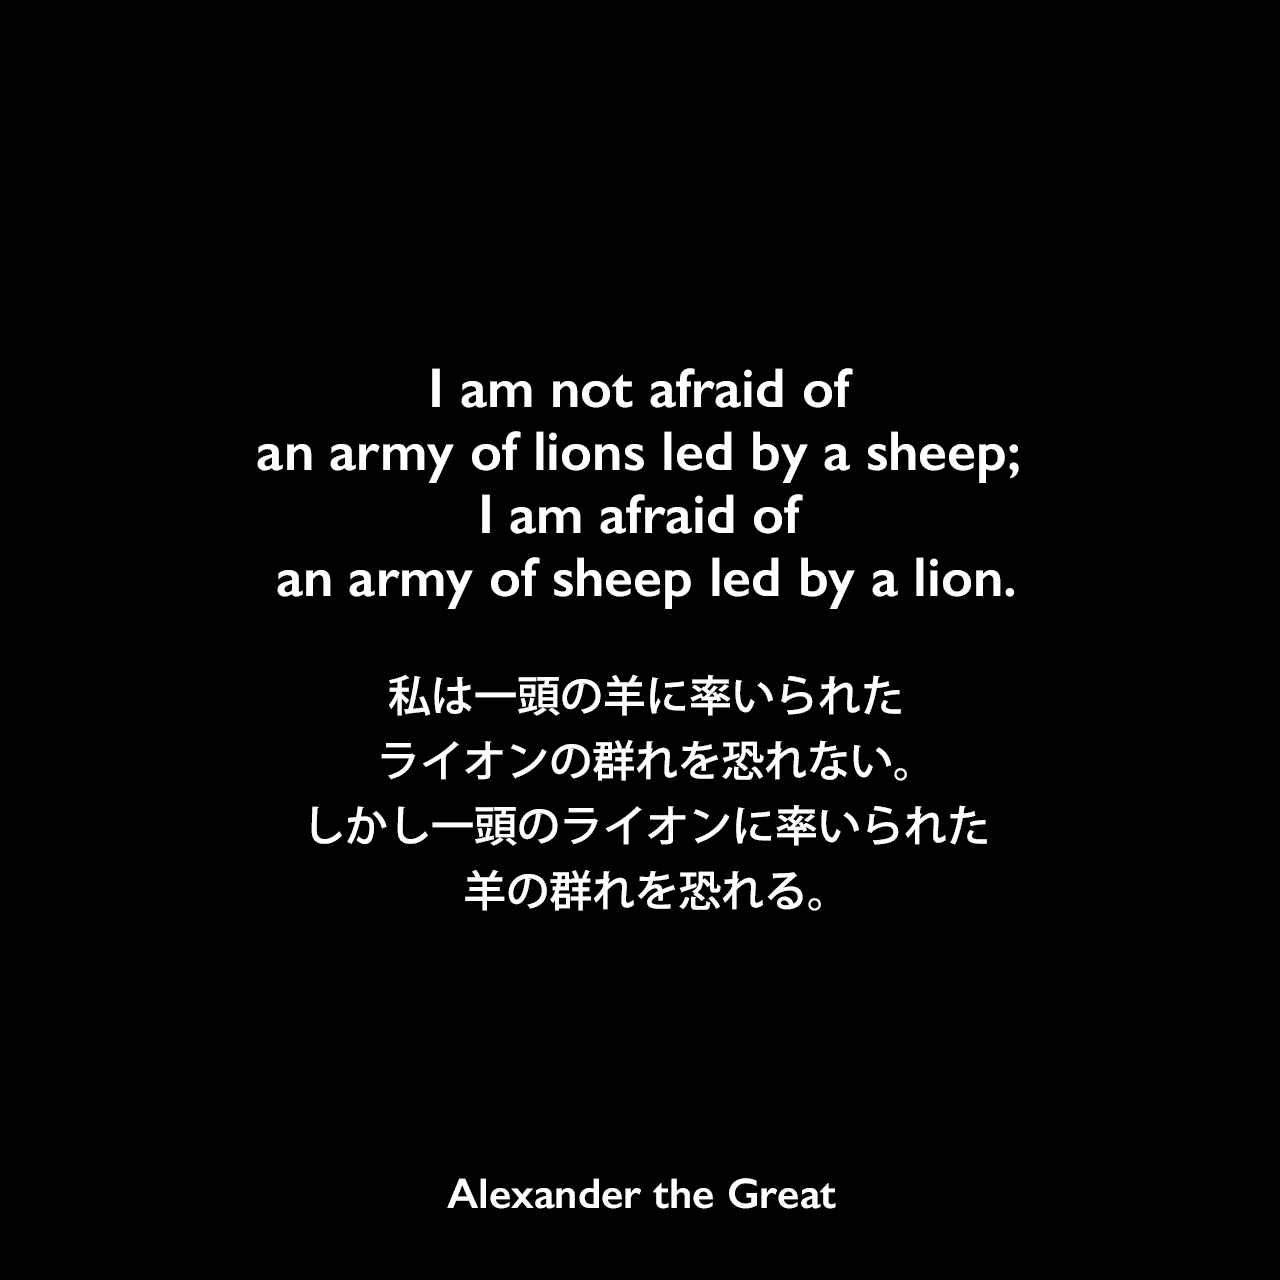 I am not afraid of an army of lions led by a sheep; I am afraid of an army of sheep led by a lion.私は一頭の羊に率いられたライオンの群れを恐れない。しかし一頭のライオンに率いられた羊の群れを恐れる。Alexander the Great